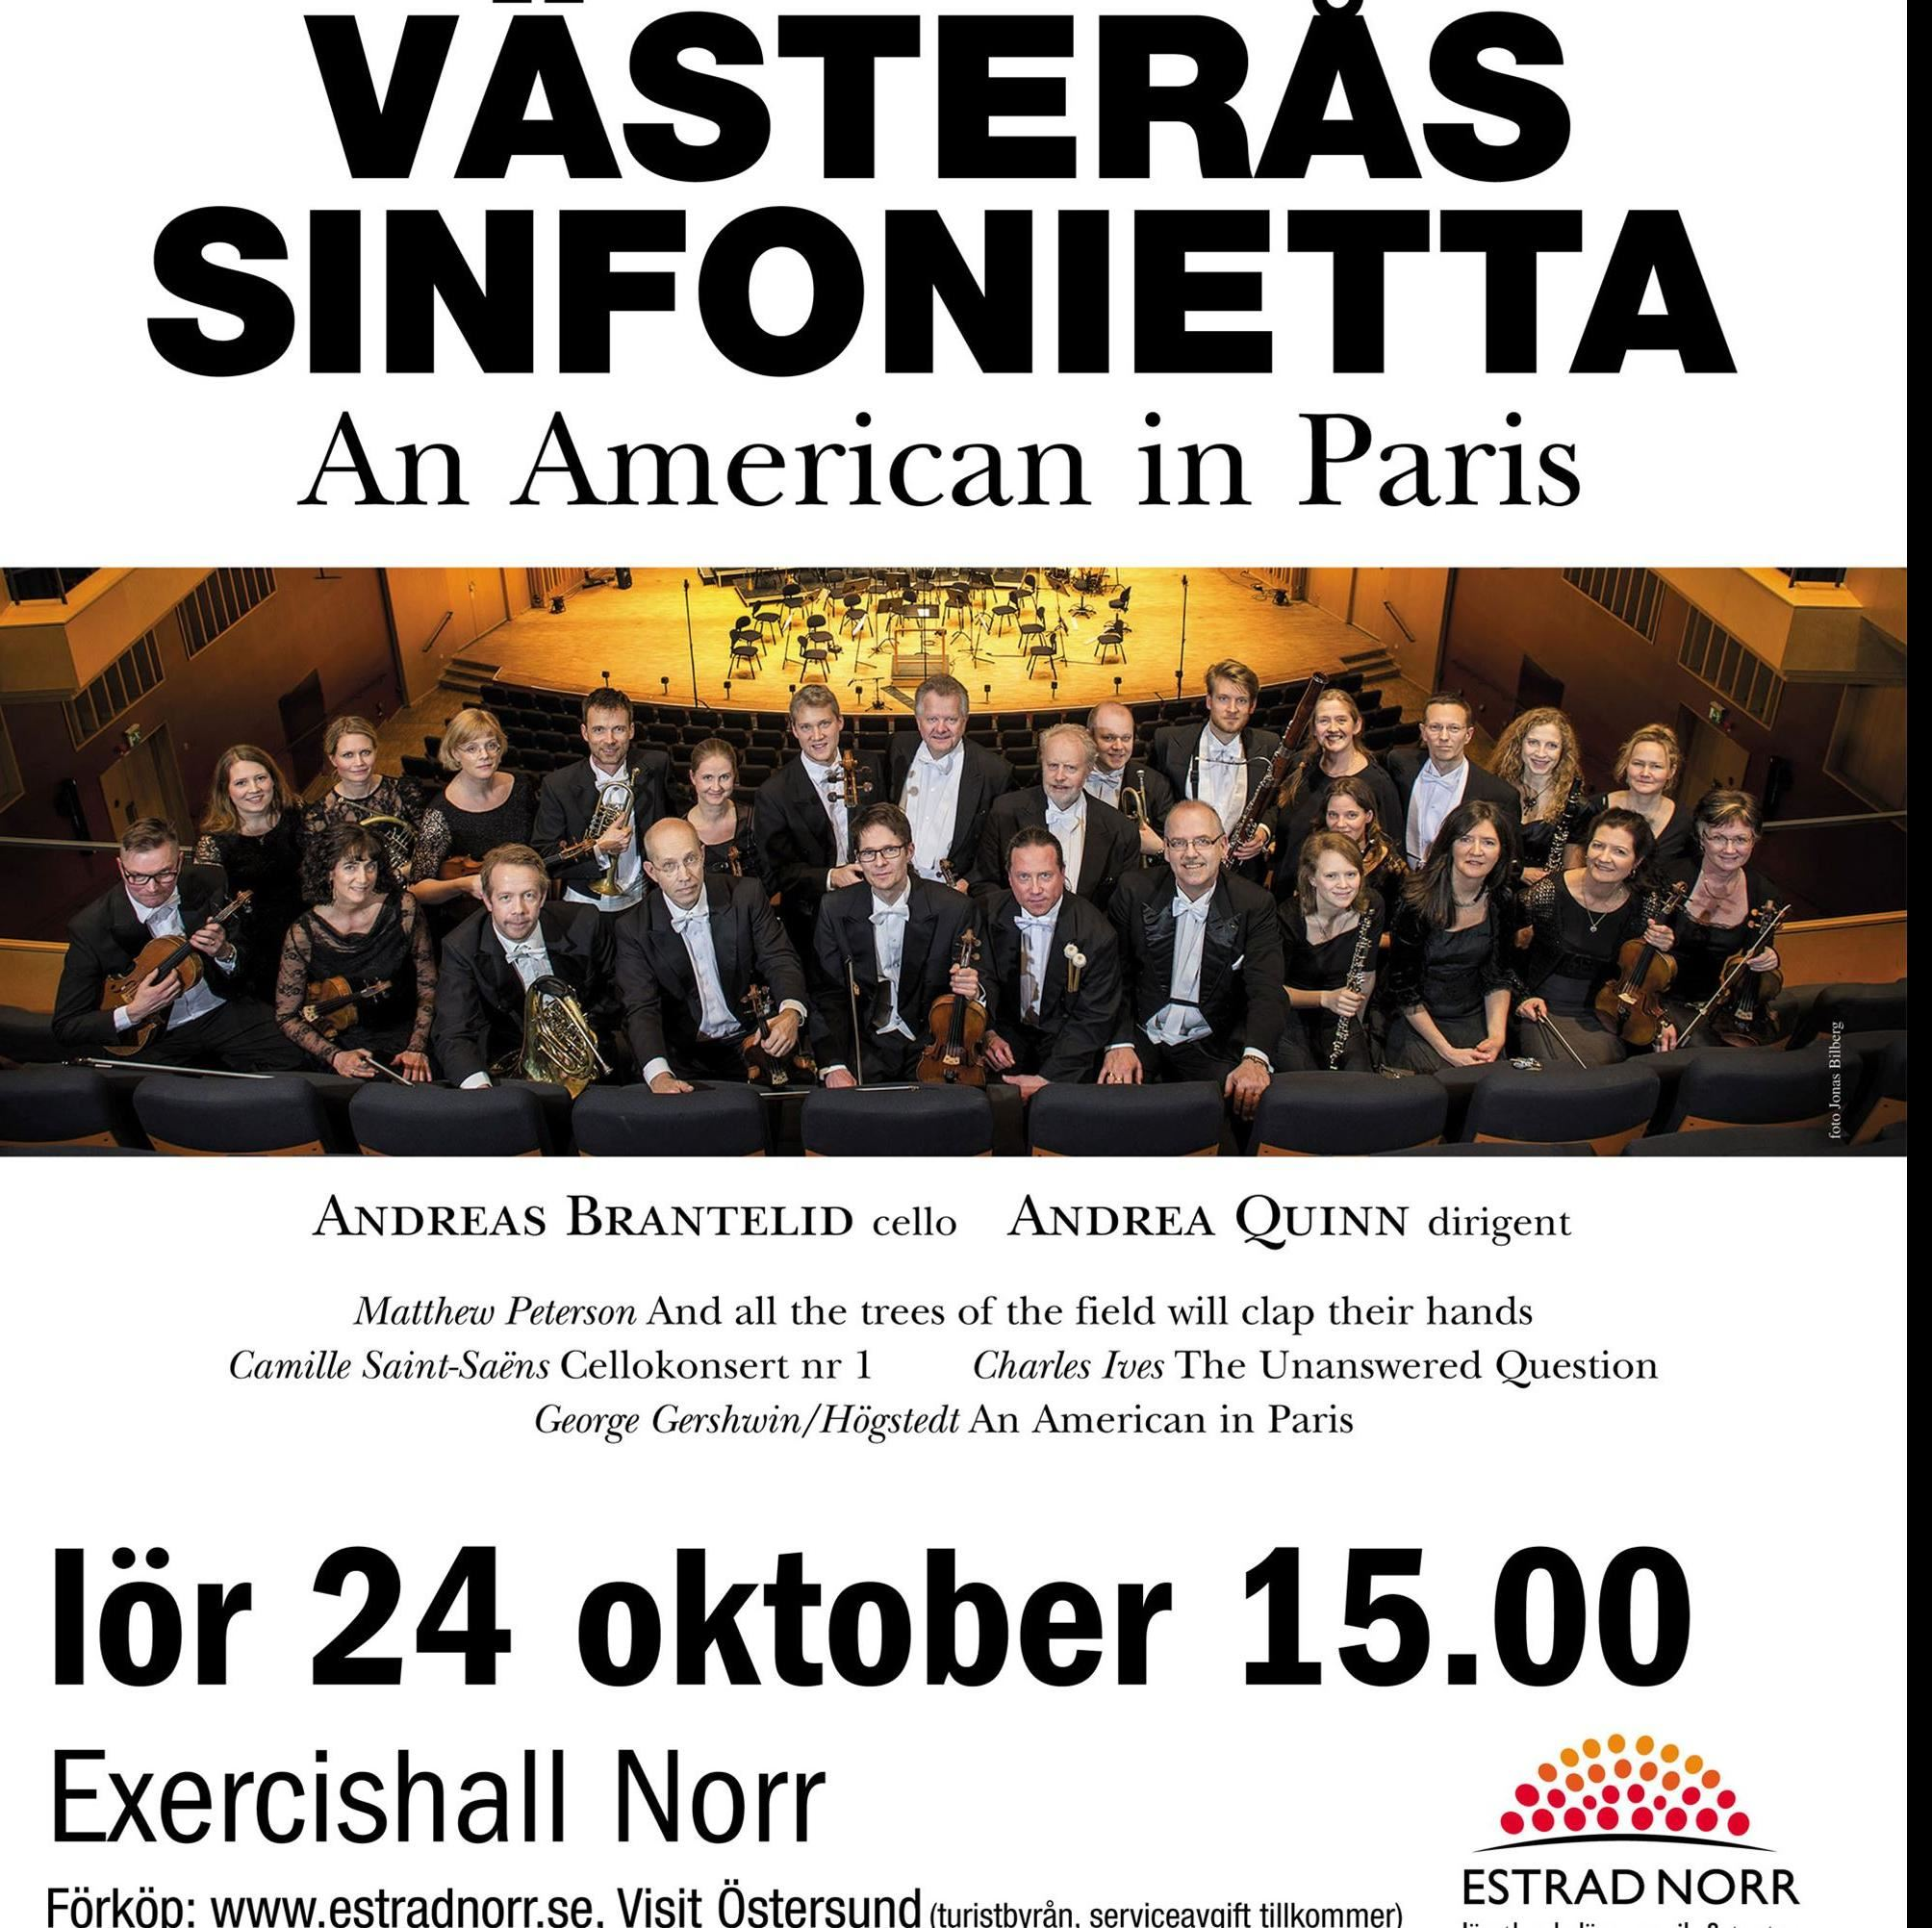 © John Garret Short, Västerås Sinfonietta - An American in Paris